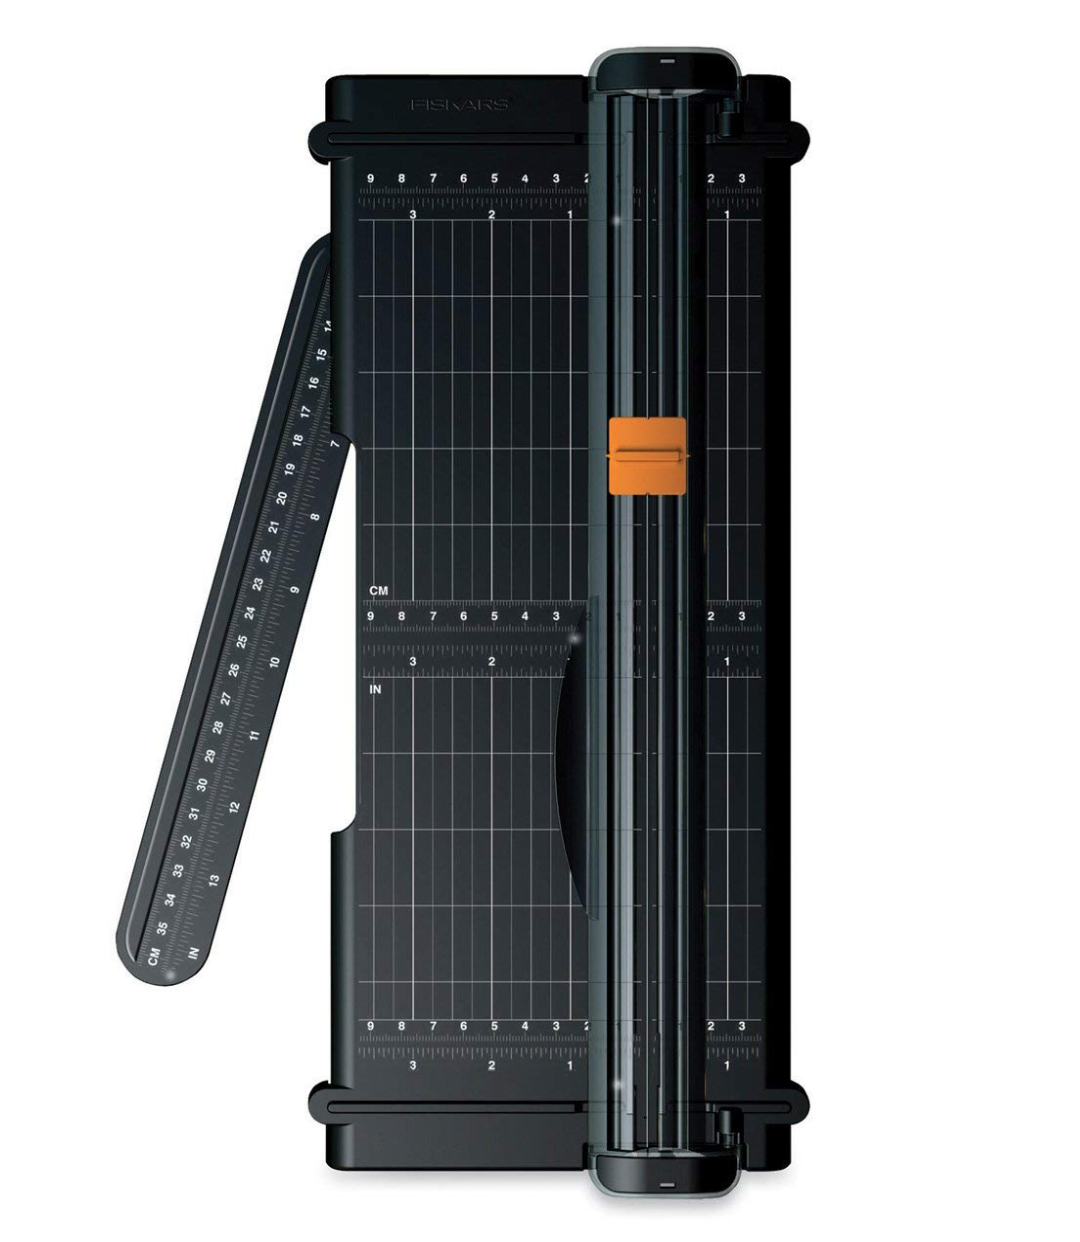 Fiskars Trimmer - From Amazon: Great for trimming up fine line on projects.